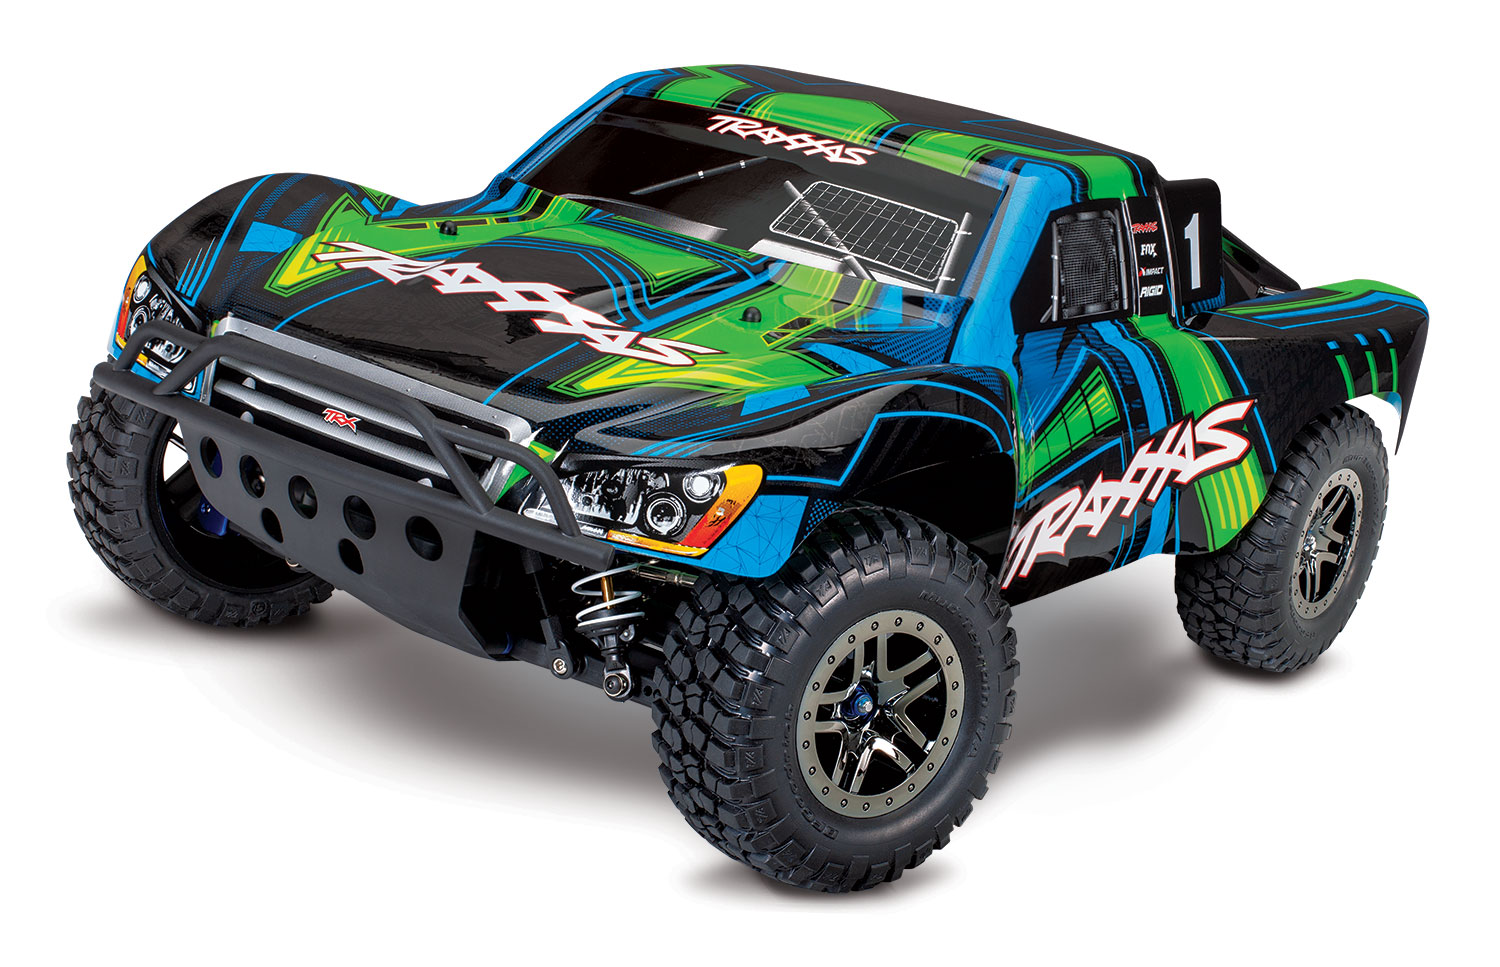 PACK TRAXXAS SLASH - 4x4 ULTIMATE - ORAN - 1/10 BRUSHLESS - iD - TSM - 2 LIPO 3S et CHARGEUR